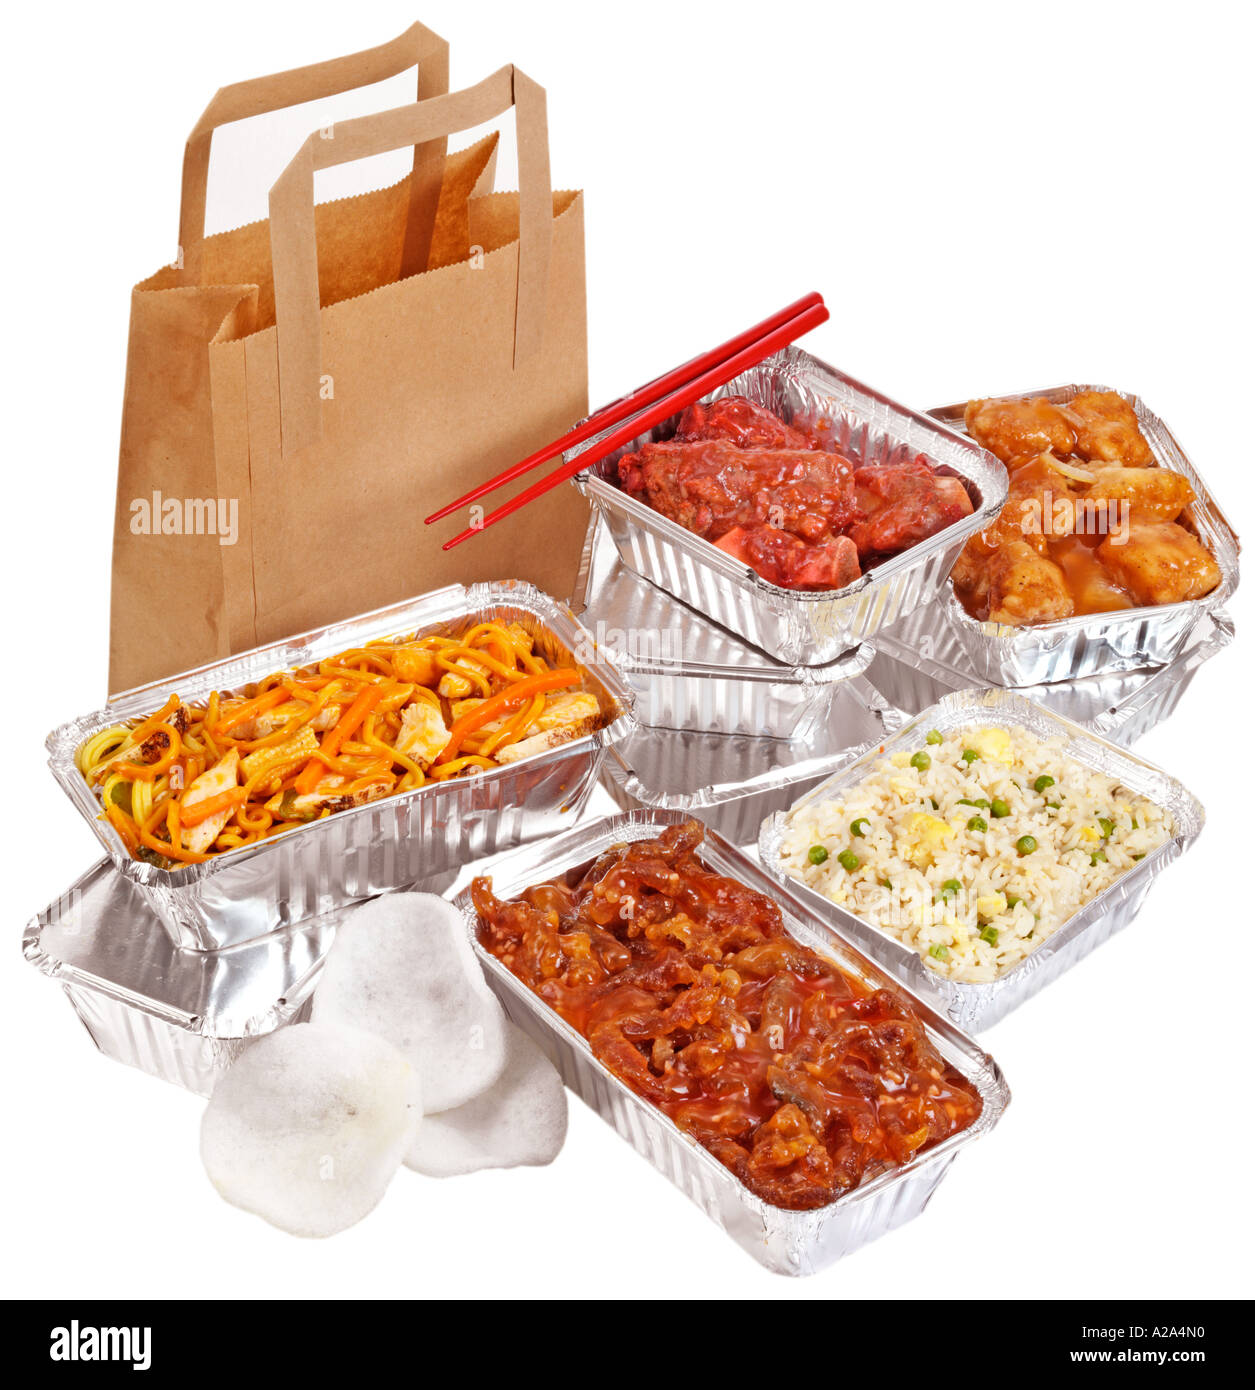 Chinese Food Delivery Image